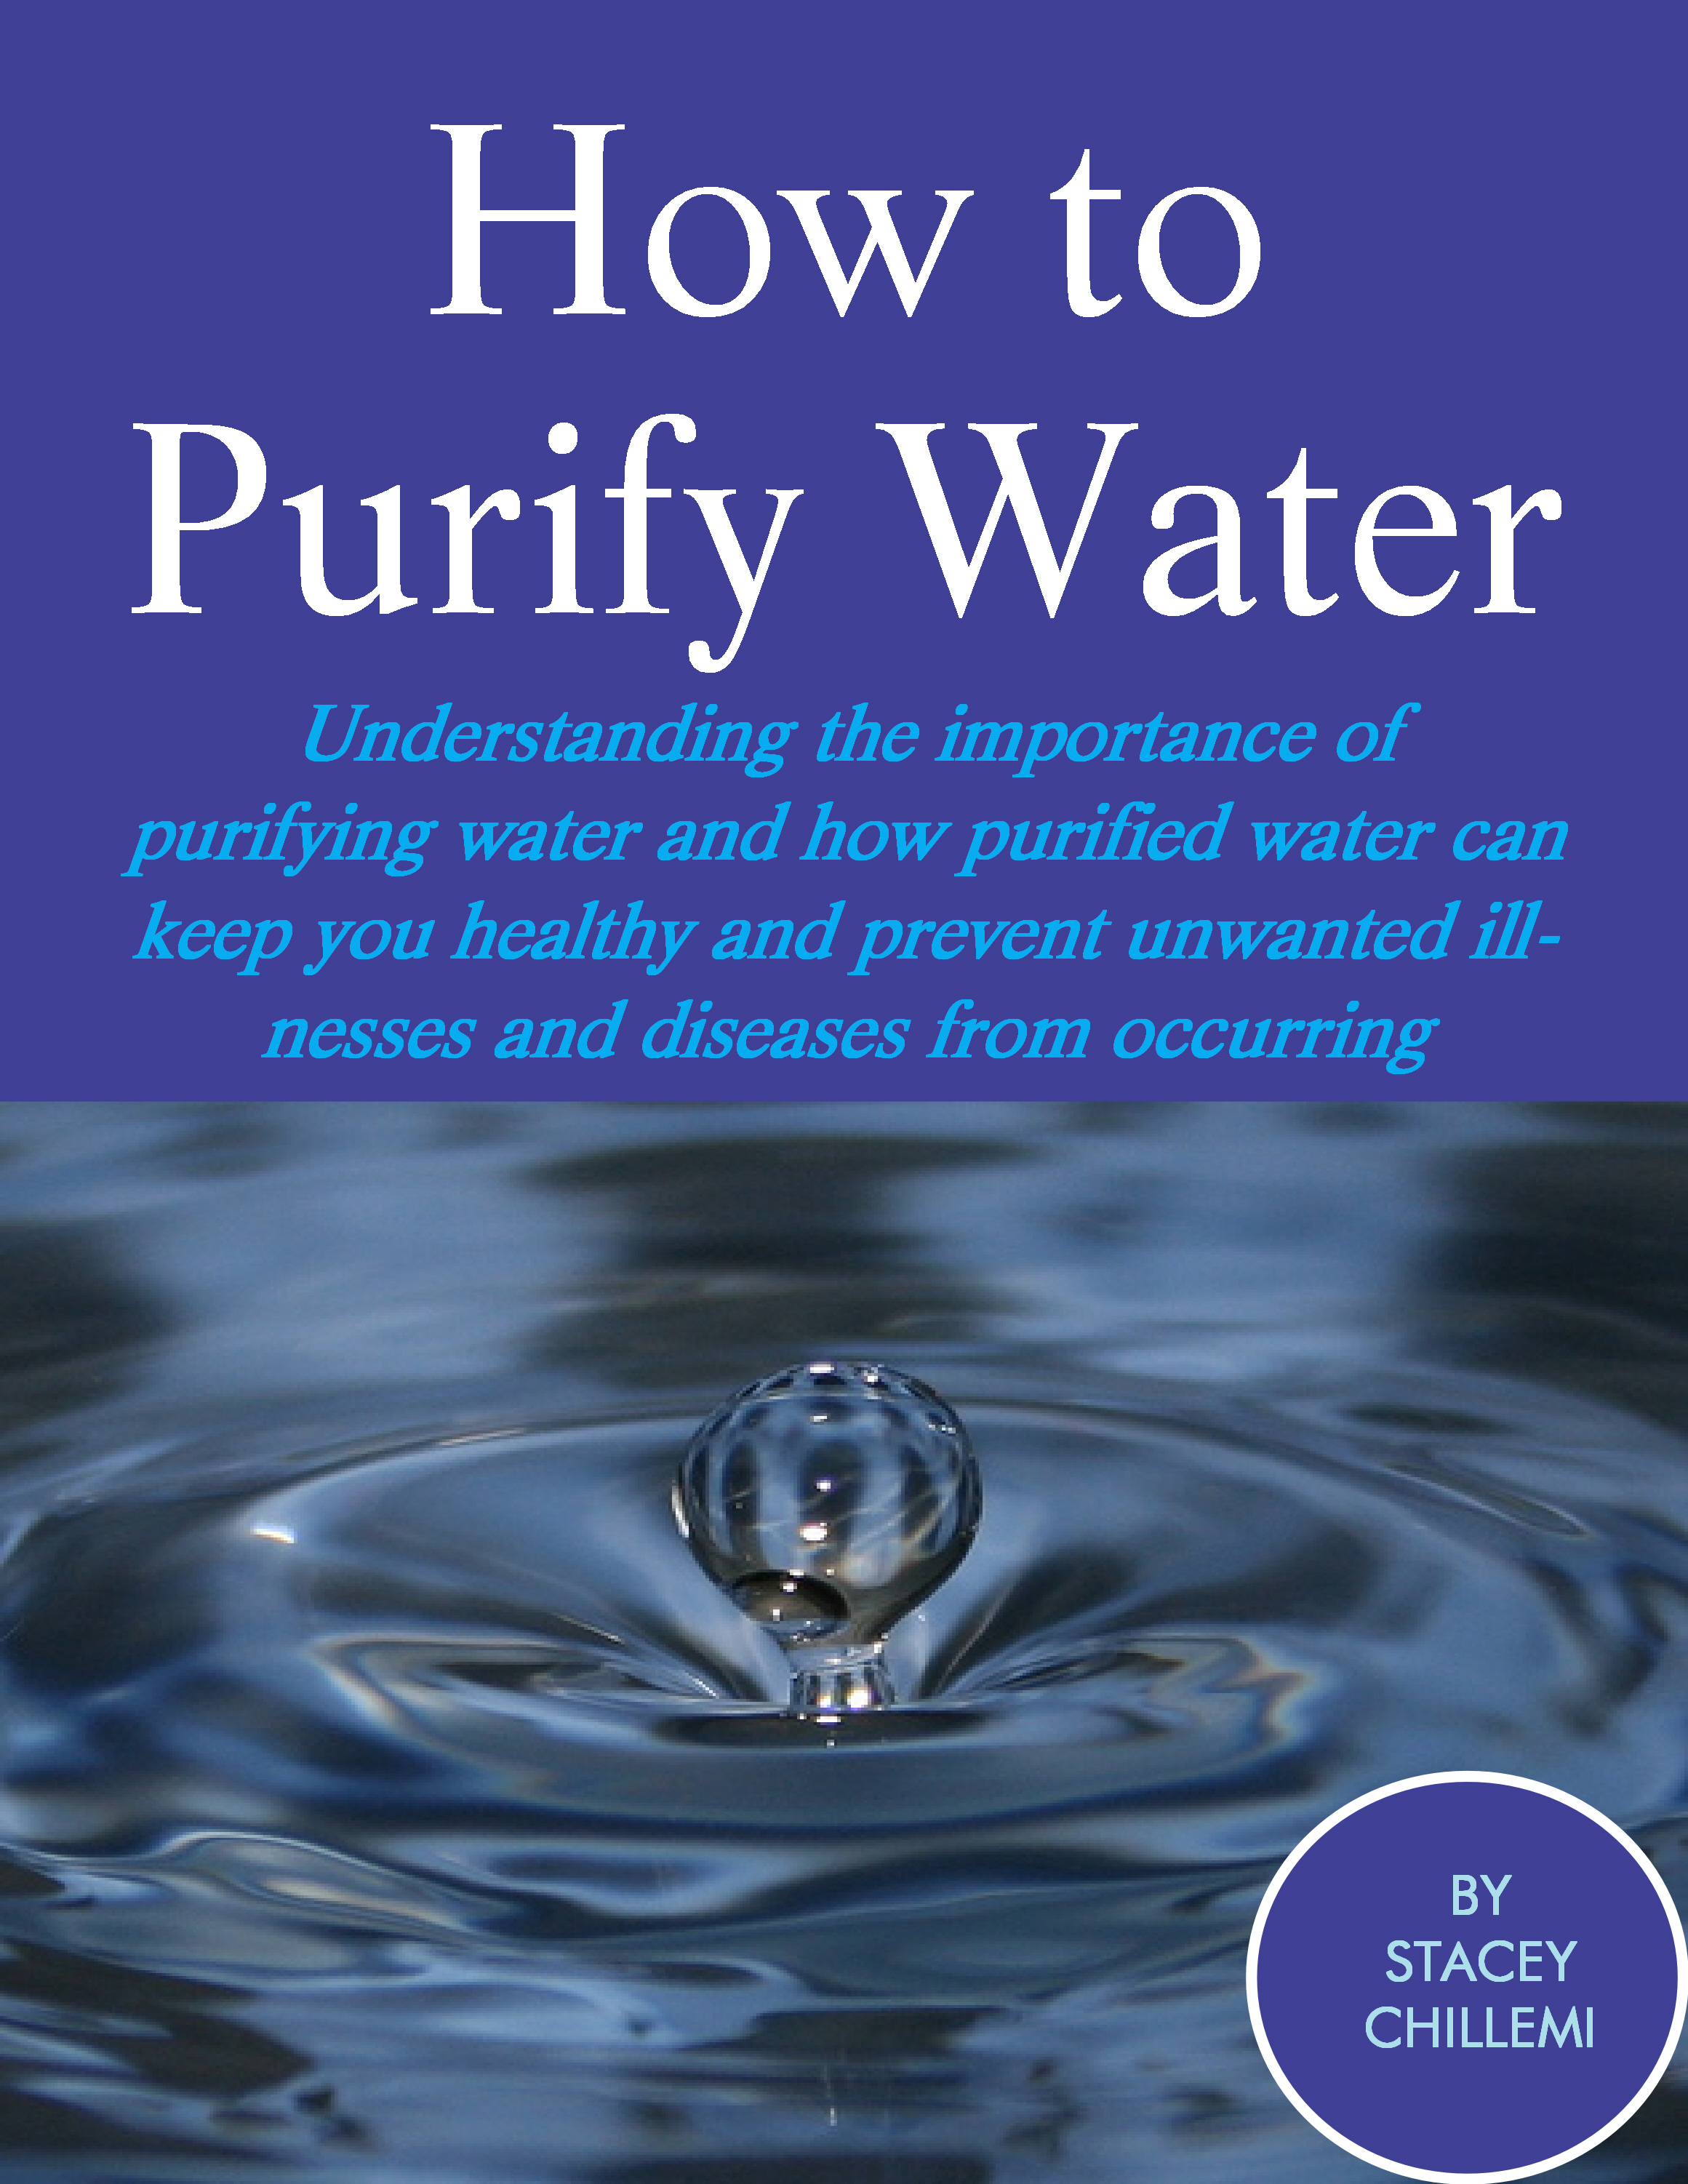 How to Purify Your Drinking Water